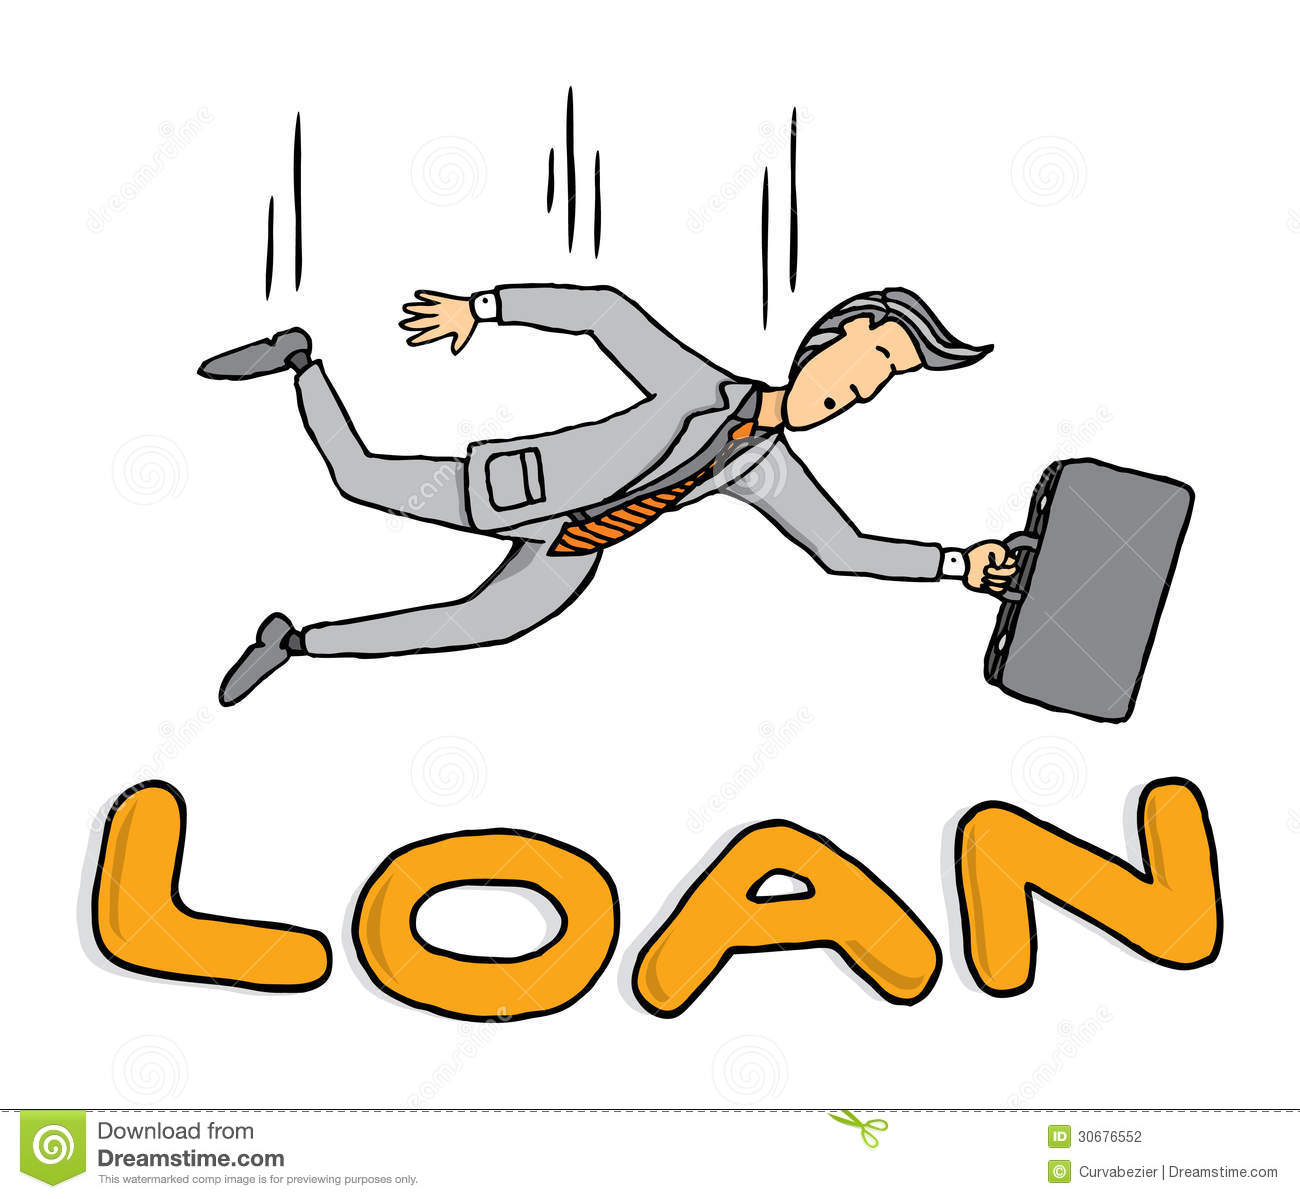 Student loan paid clipart clip free Loan Payment Clipart - Clipart Kid clip free